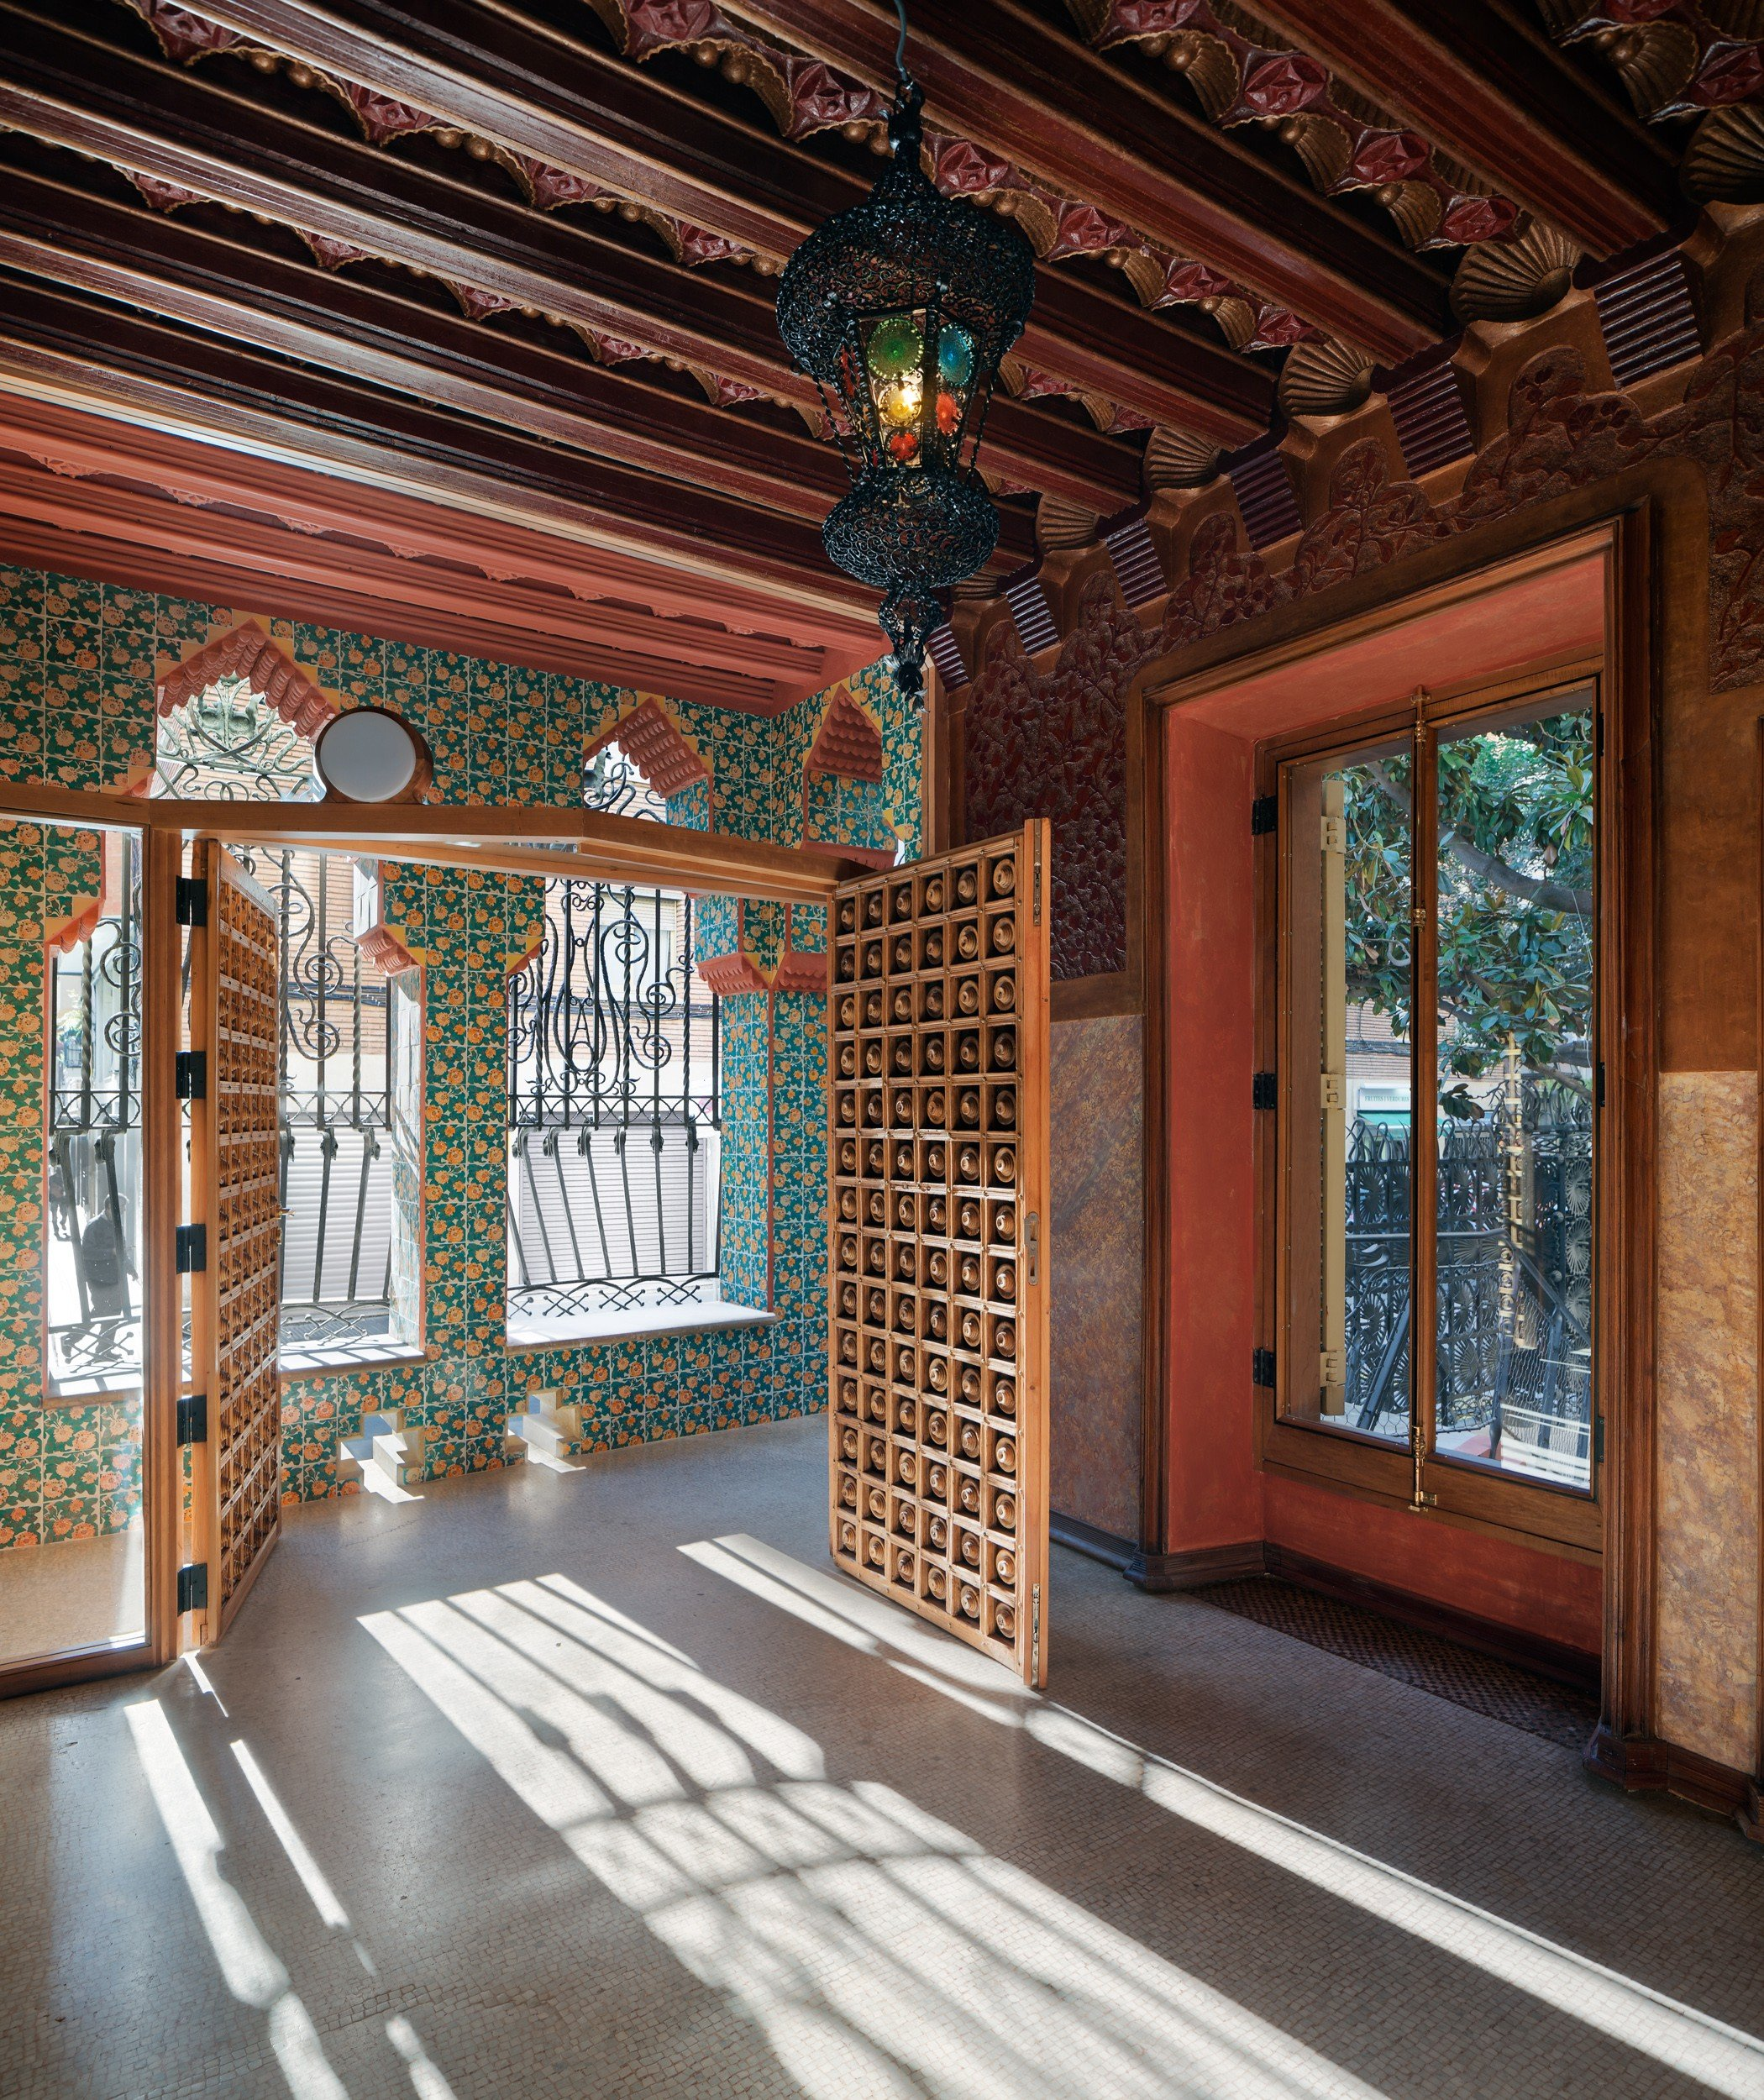 Barcelona Houses: Inside Gaudí's First House: 130-year-old Casa Vicens Opens